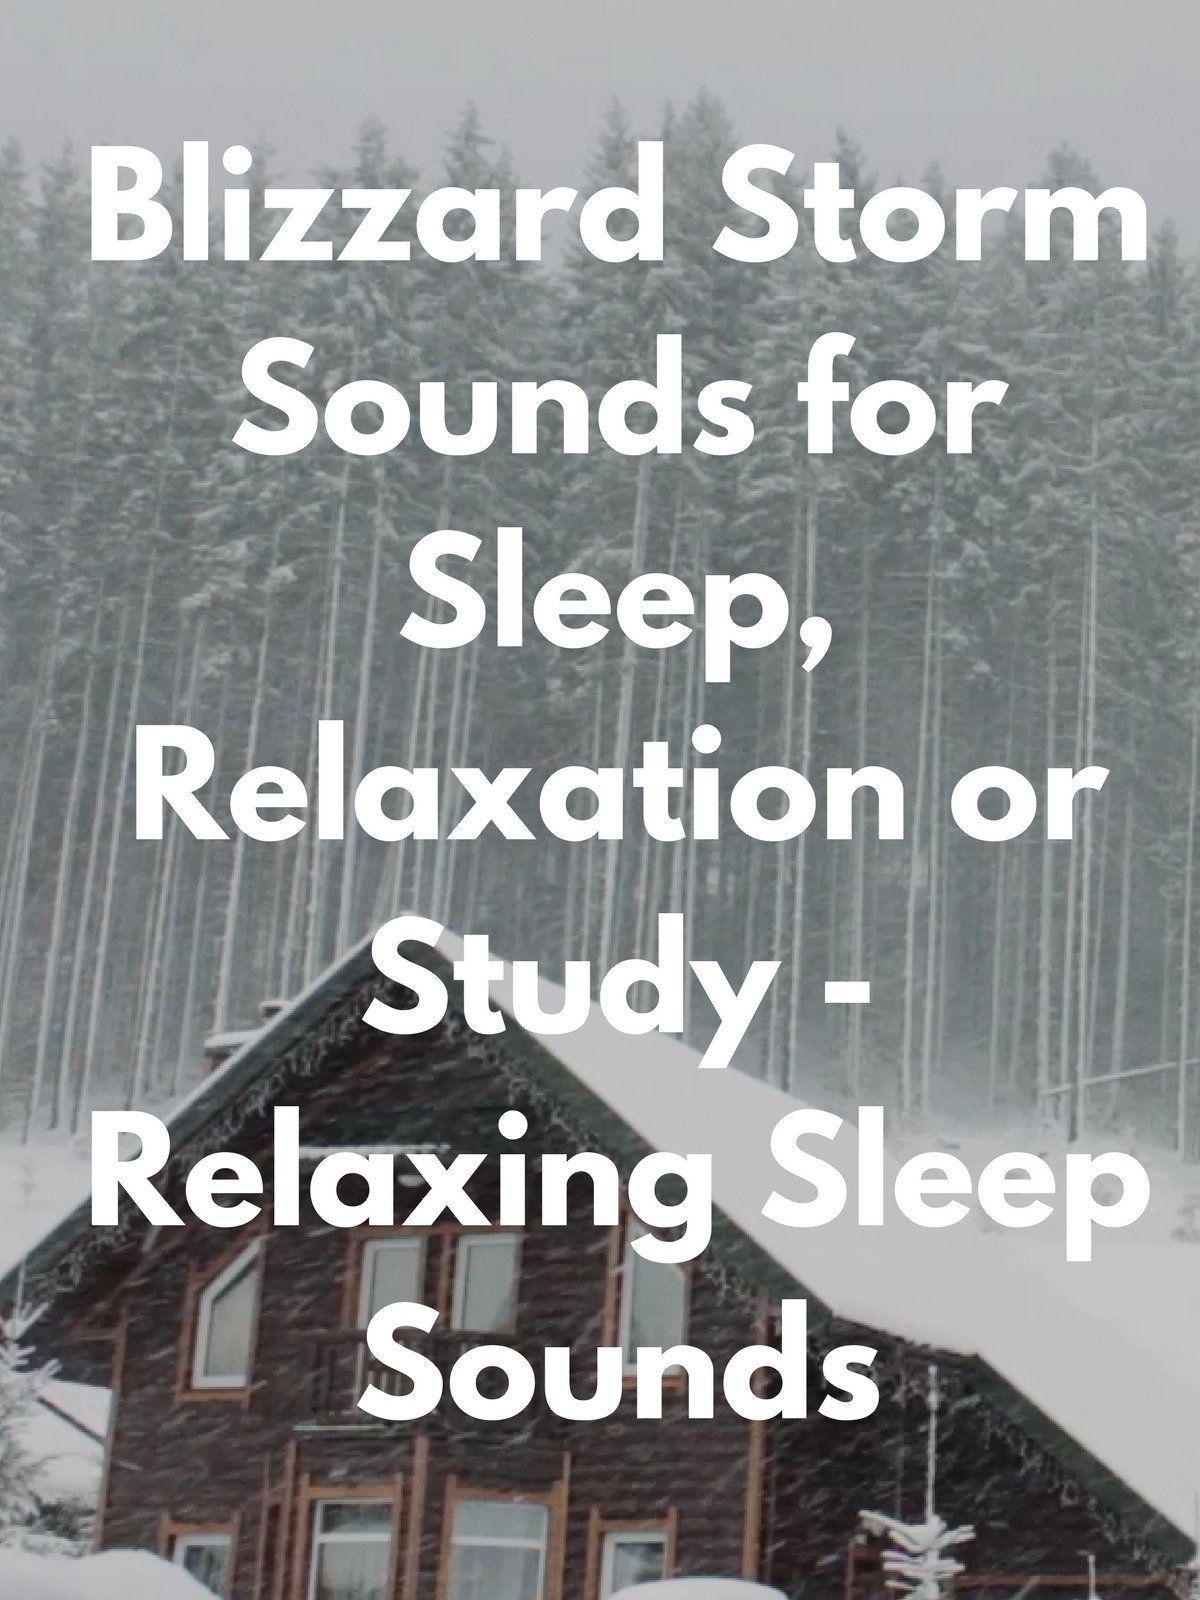 Blizzard Storm Sounds for Sleep, Relaxation or Study